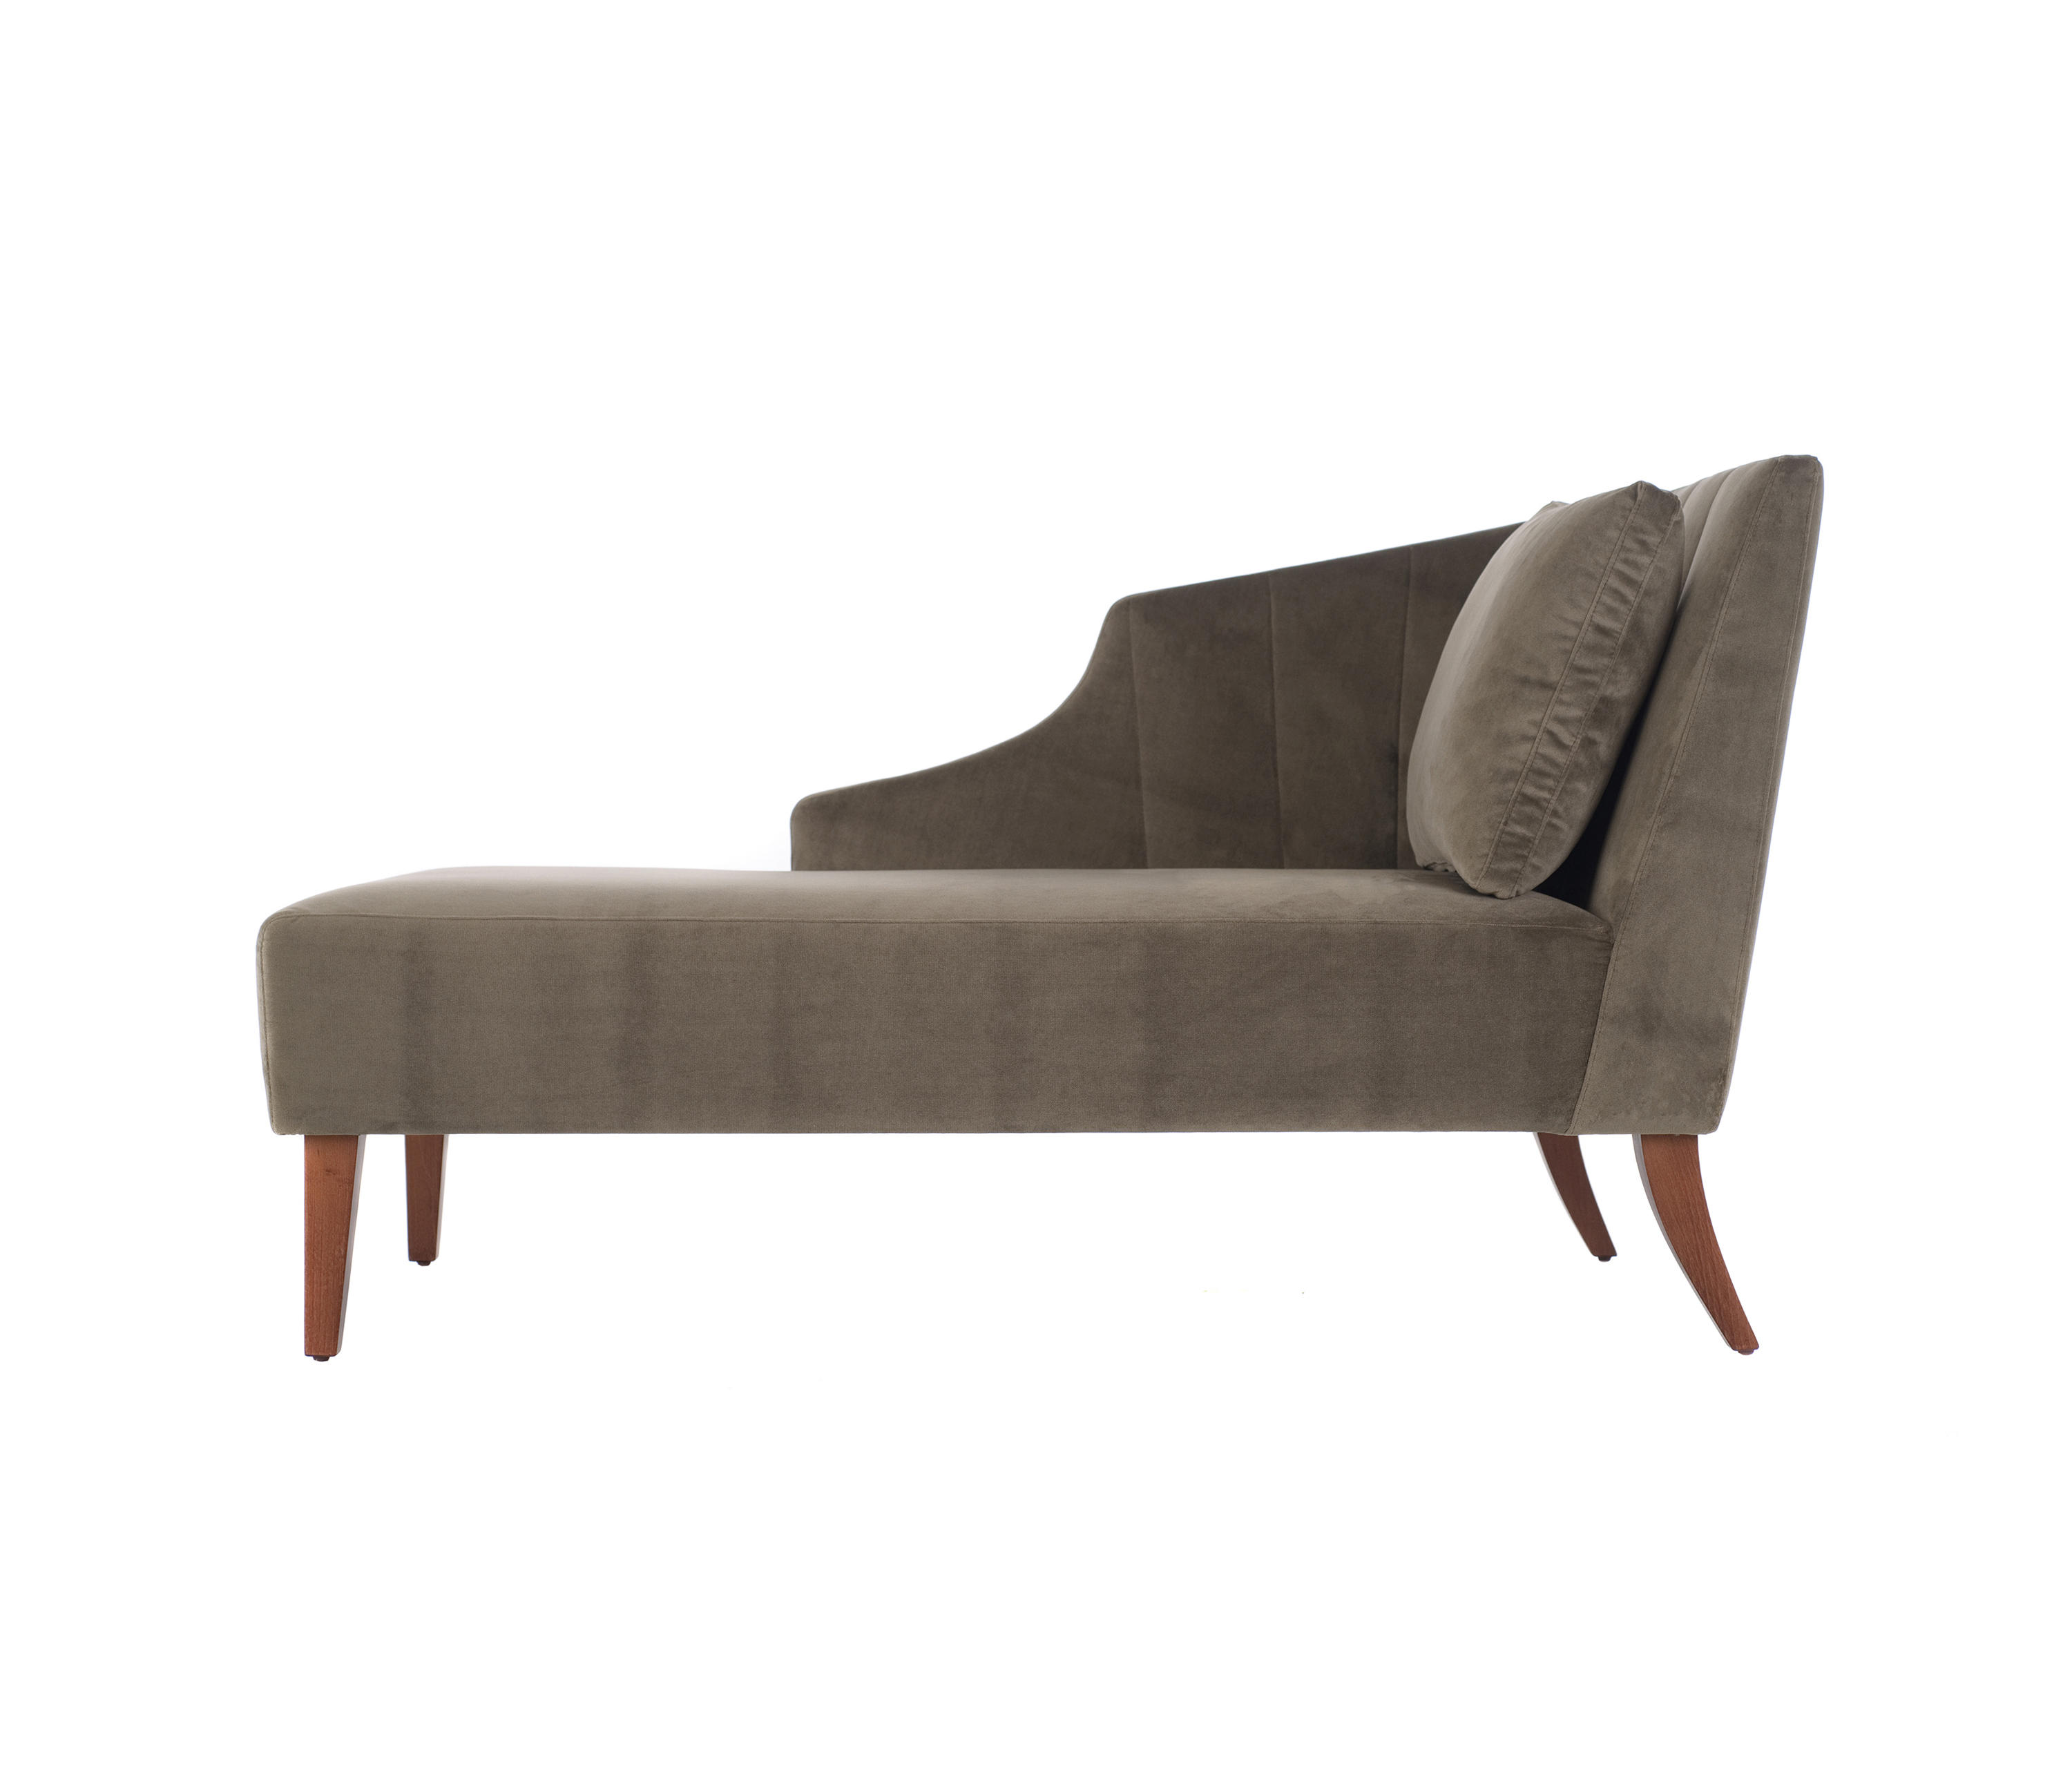 Aspen chaise longue recamieres from paulo antunes for Chaise urban ikea